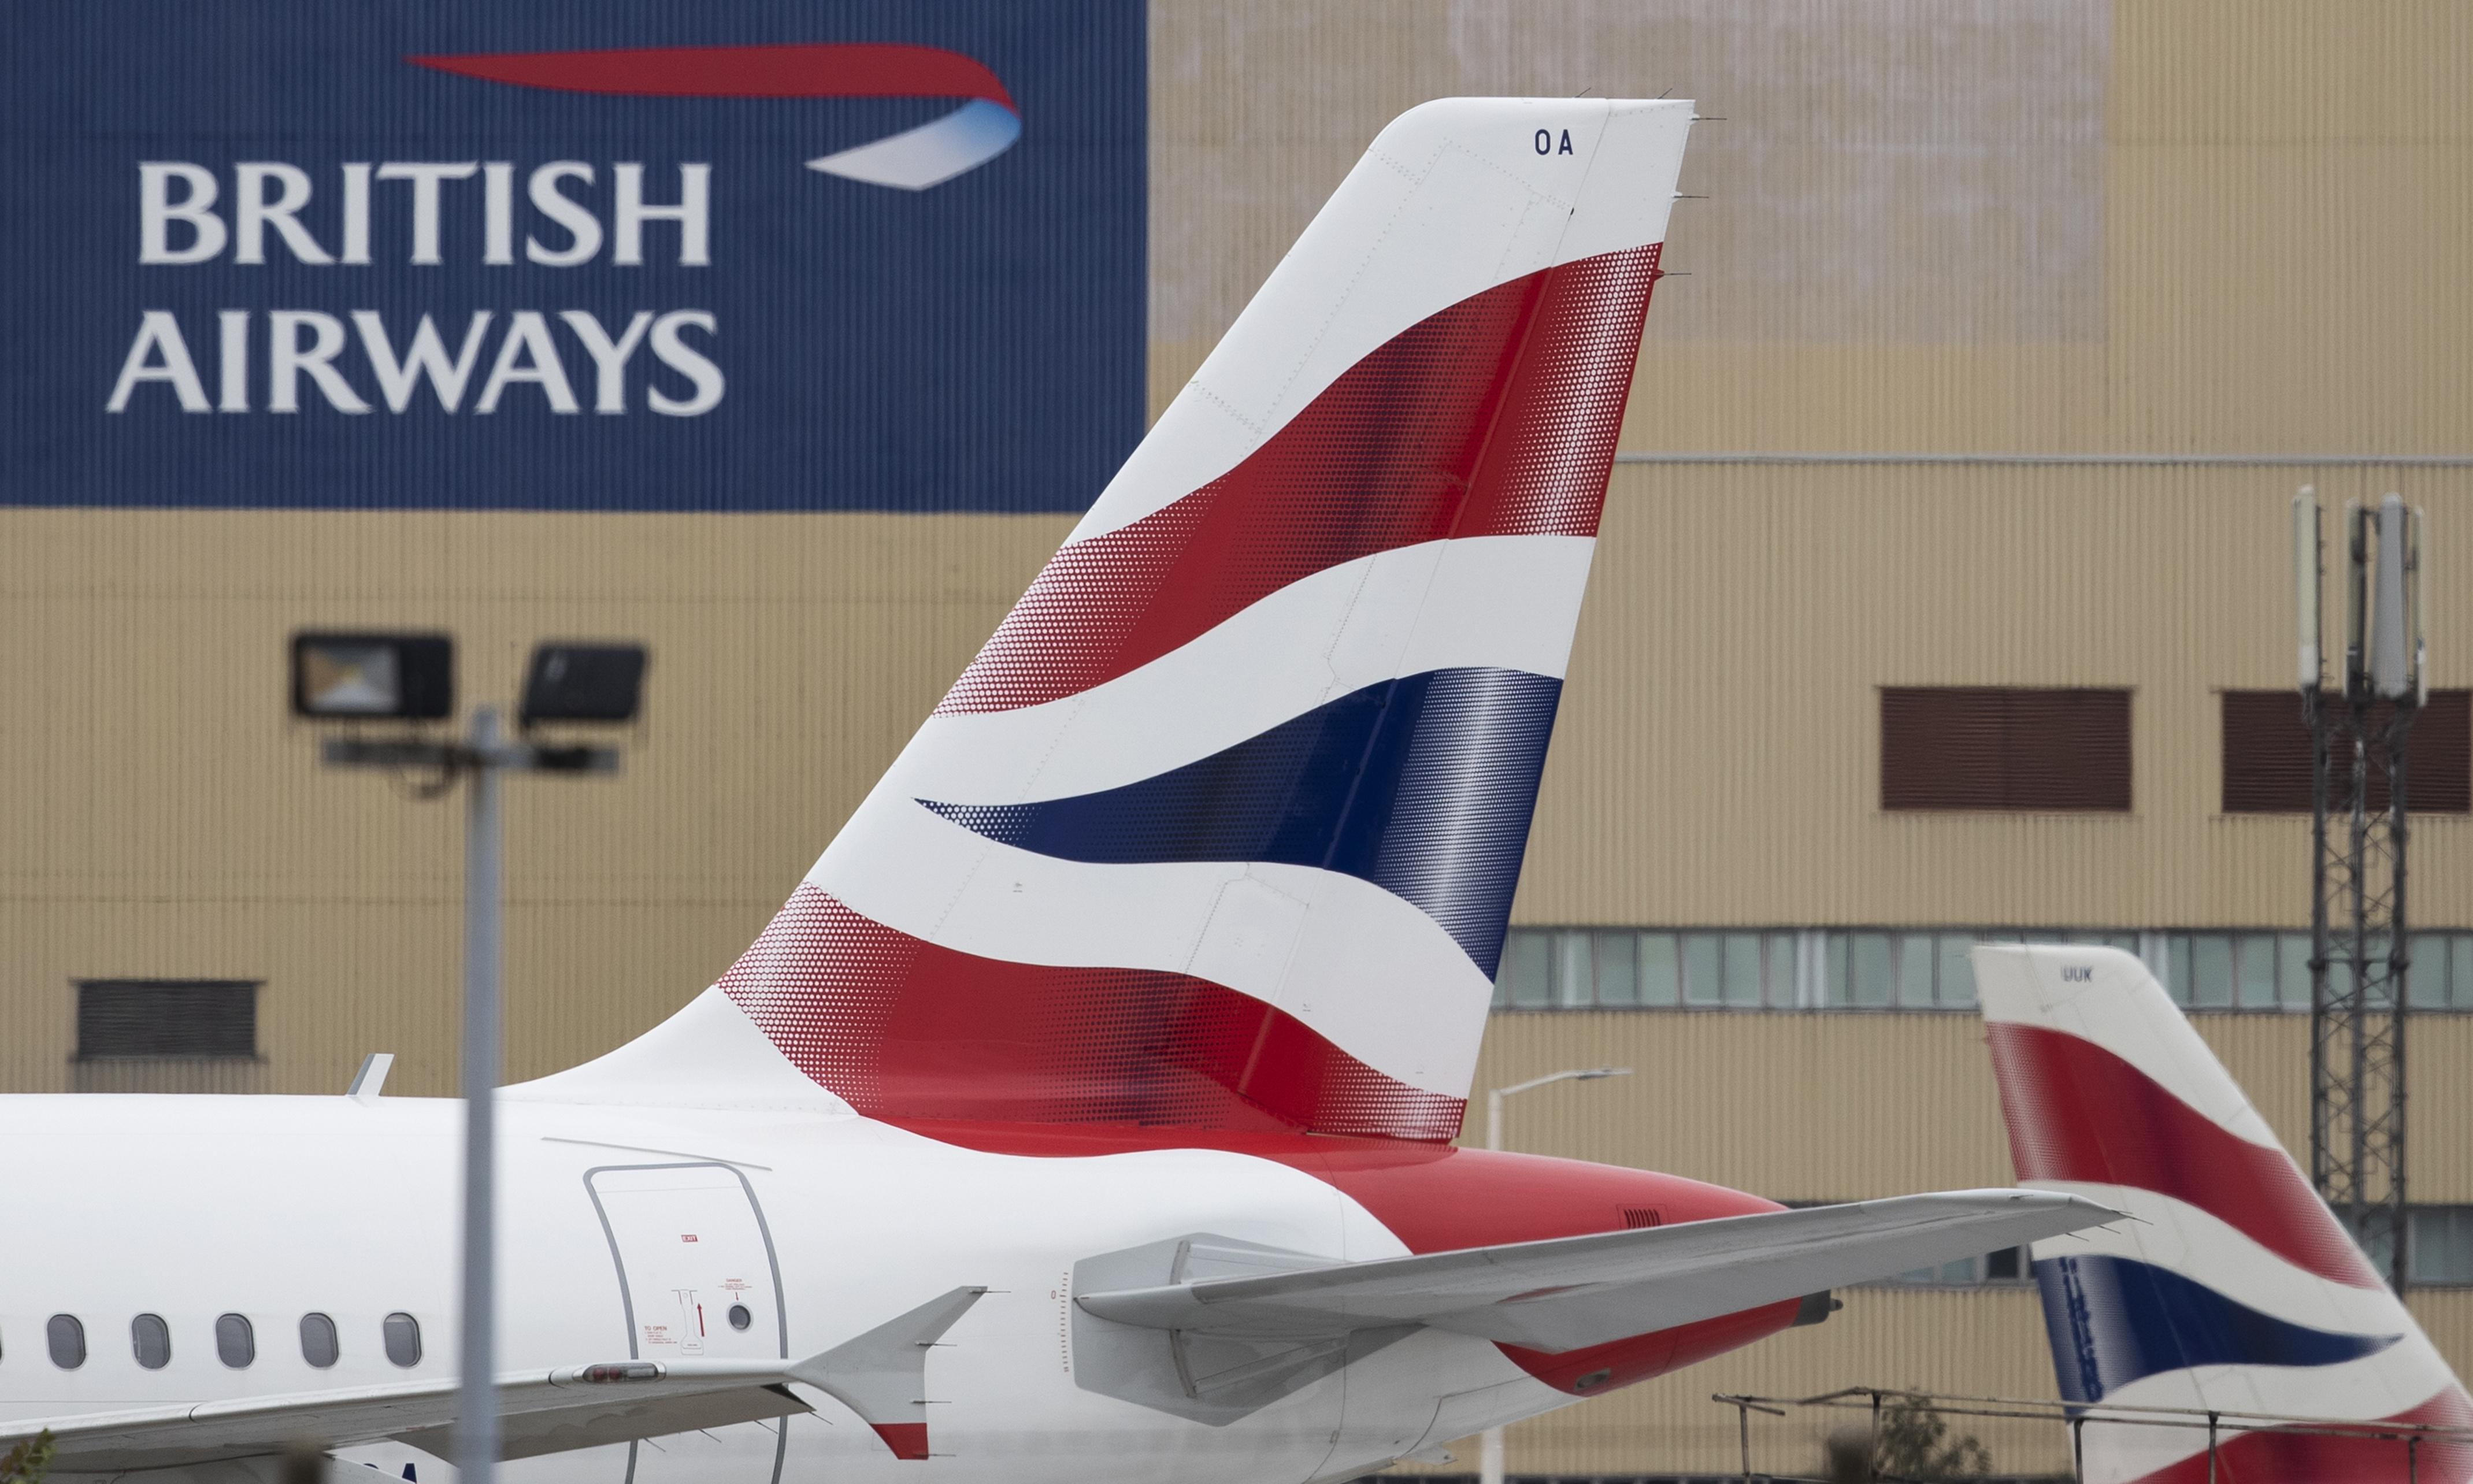 British Airways pilots' pay and perks – the facts